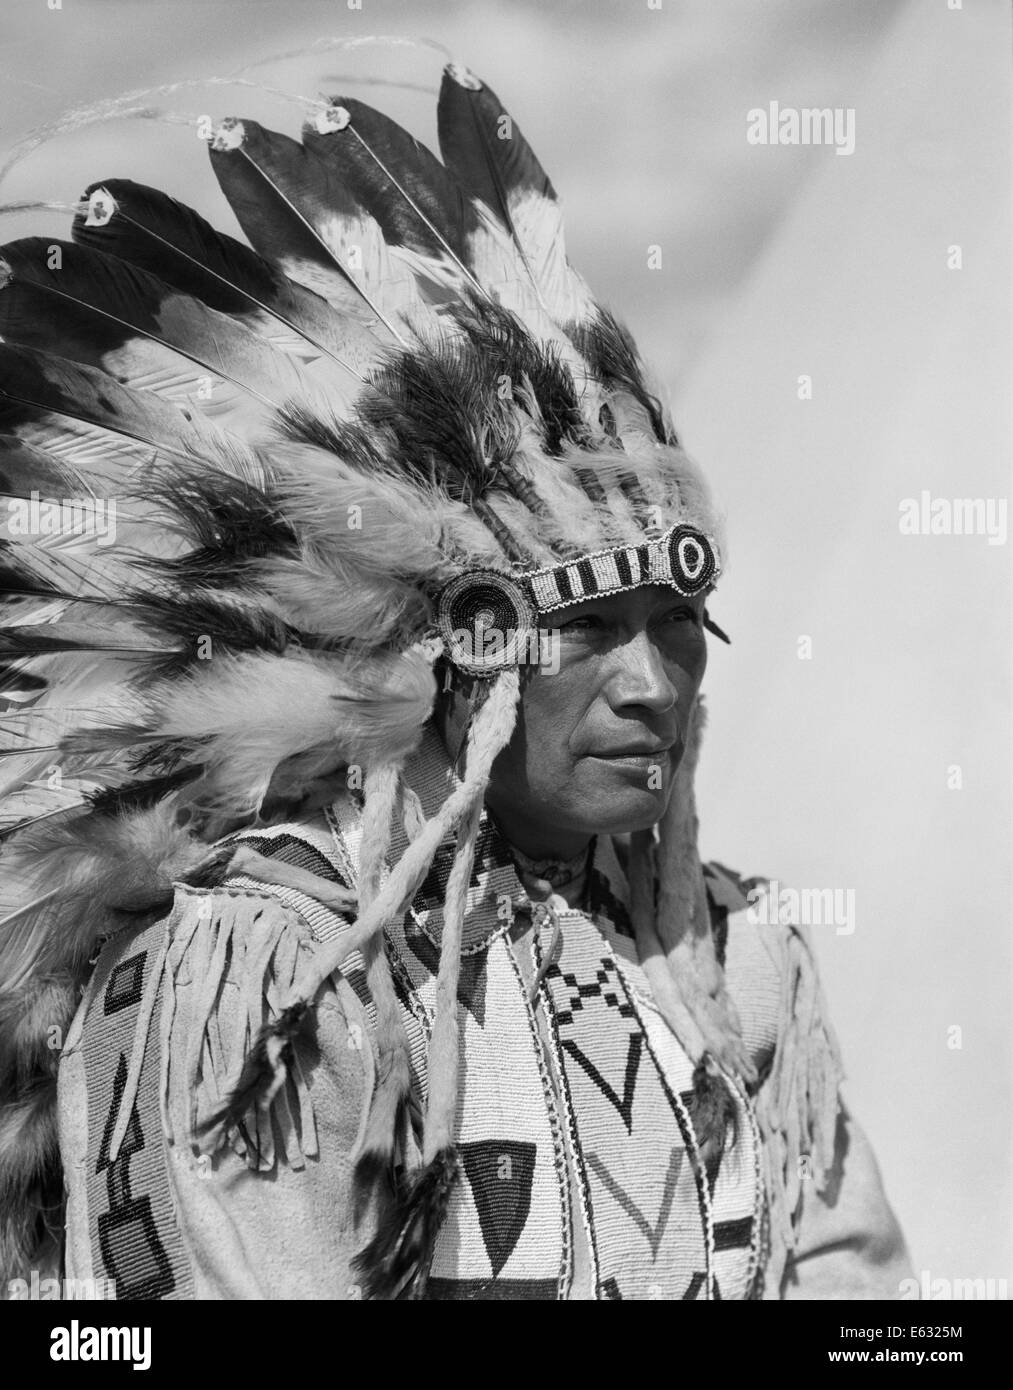 1920s PORTRAIT NATIVE AMERICAN MAN WEARING FULL FEATHER HEADDRESS STONEY SIOUX ALBERTA CANADA - Stock Image